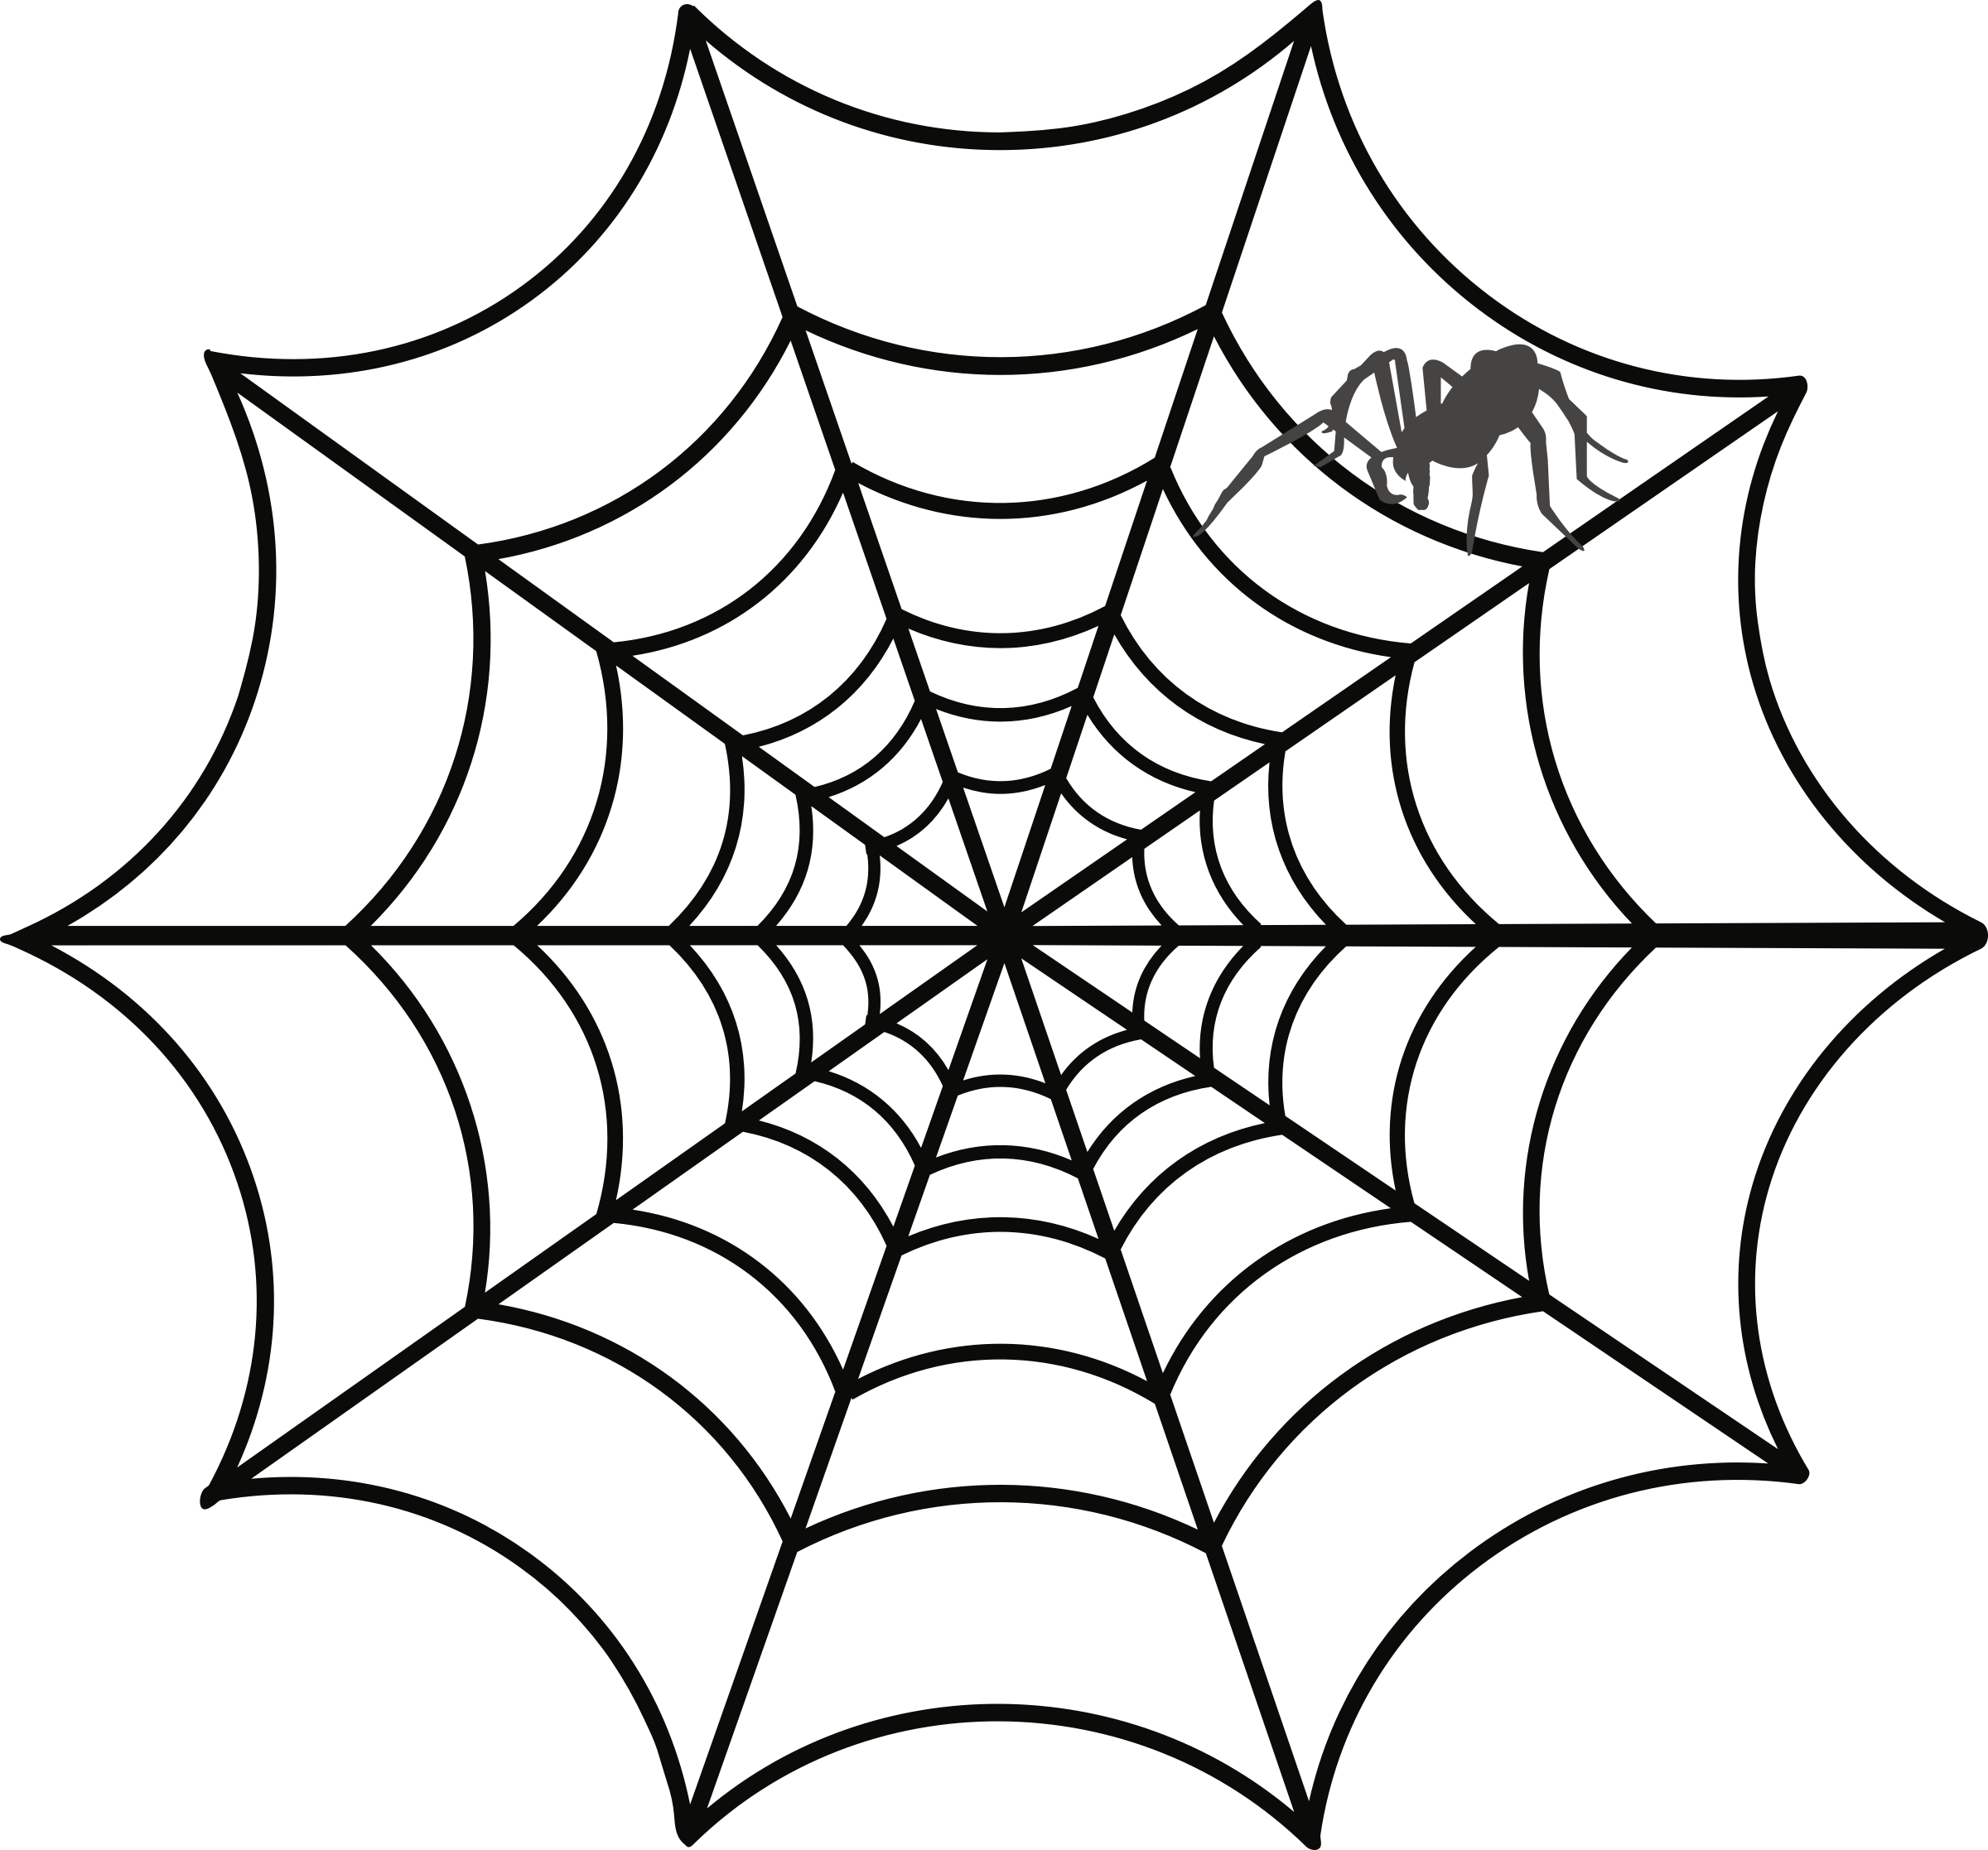 clipart free stock Spider and web clipart. Big image png